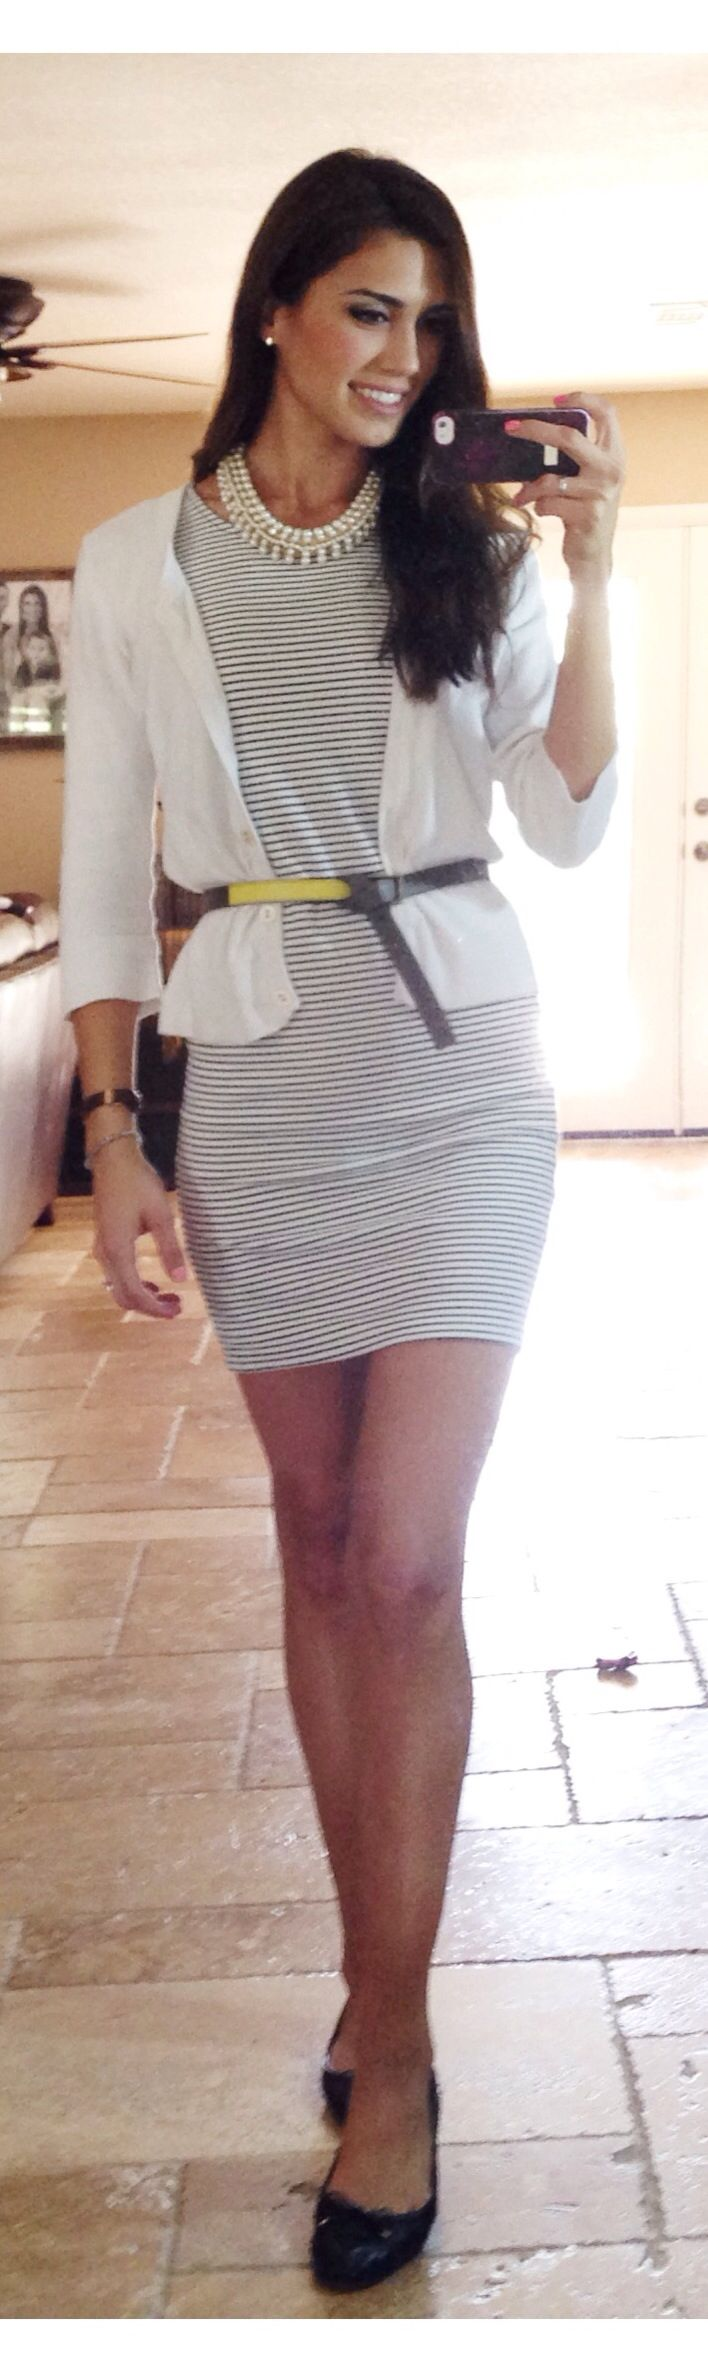 Instagram Karelystips For More Ootd Church Outfit Fashion Classy Fashion Pinterest